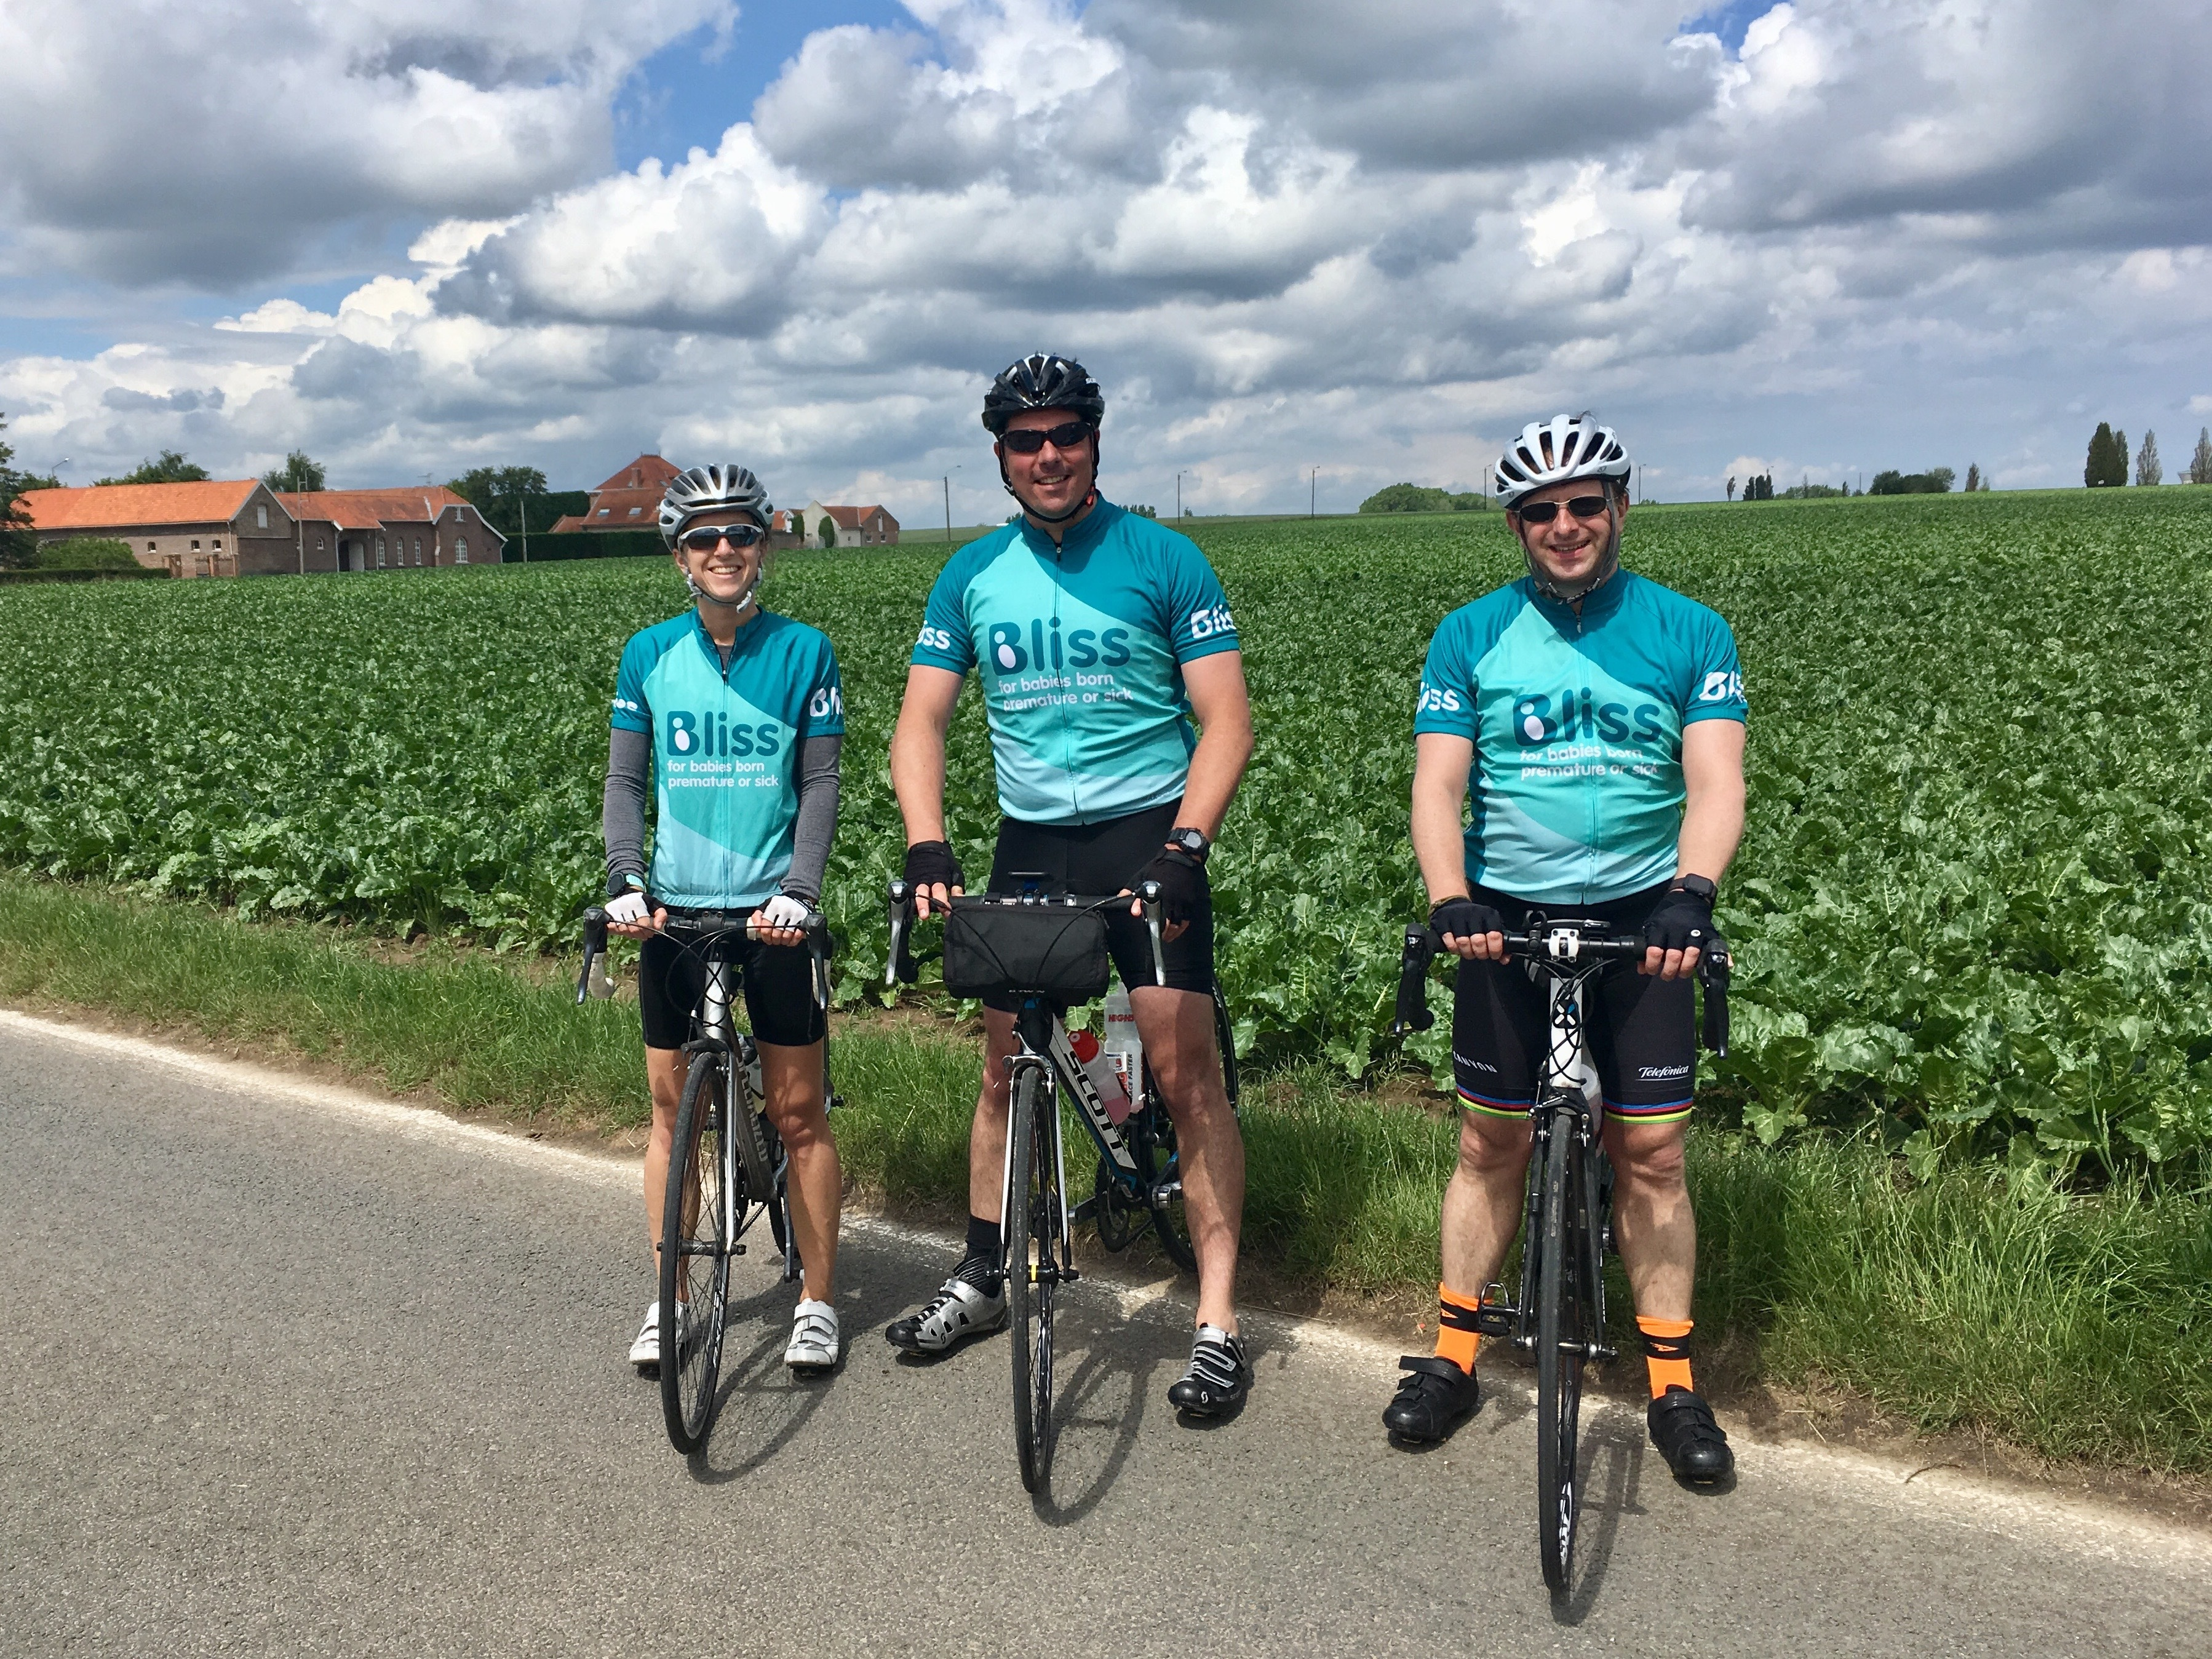 3 Bliss riders in the French countryside